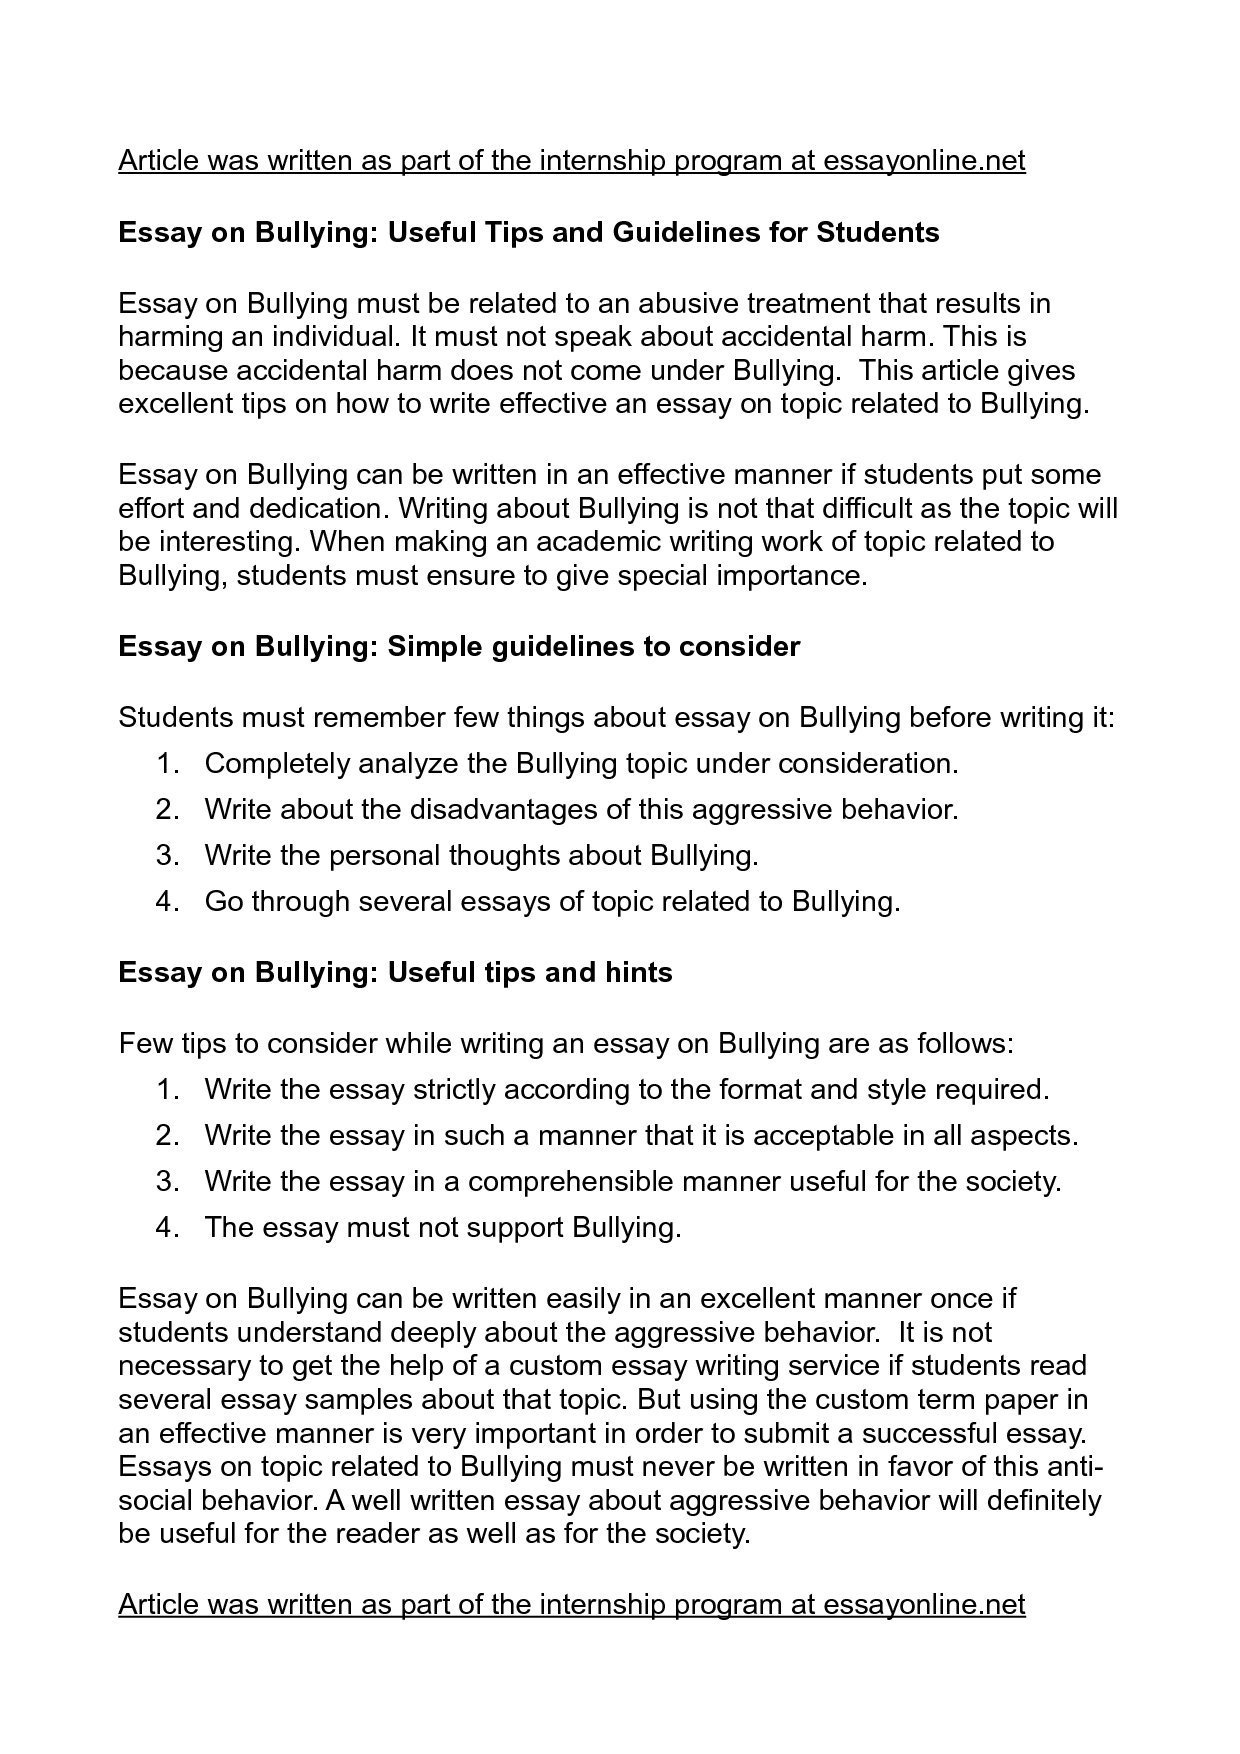 bully research paper Usf is a leading global research university located in the tampa bay area.